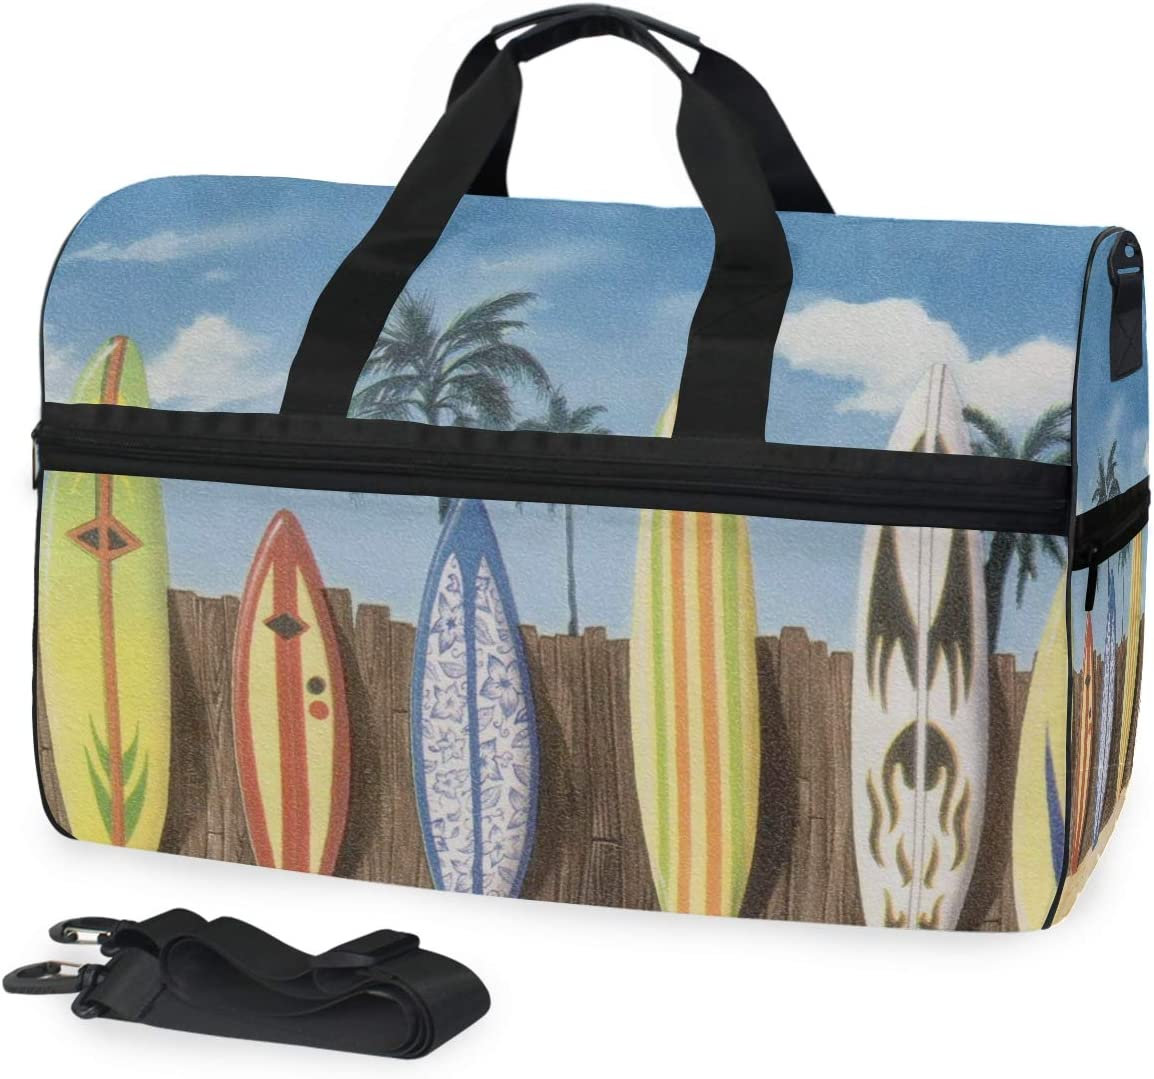 MUOOUM Beach Colorful Surfboard Large Duffle Bags Sports Gym Bag with Shoes Compartment for Men and Women